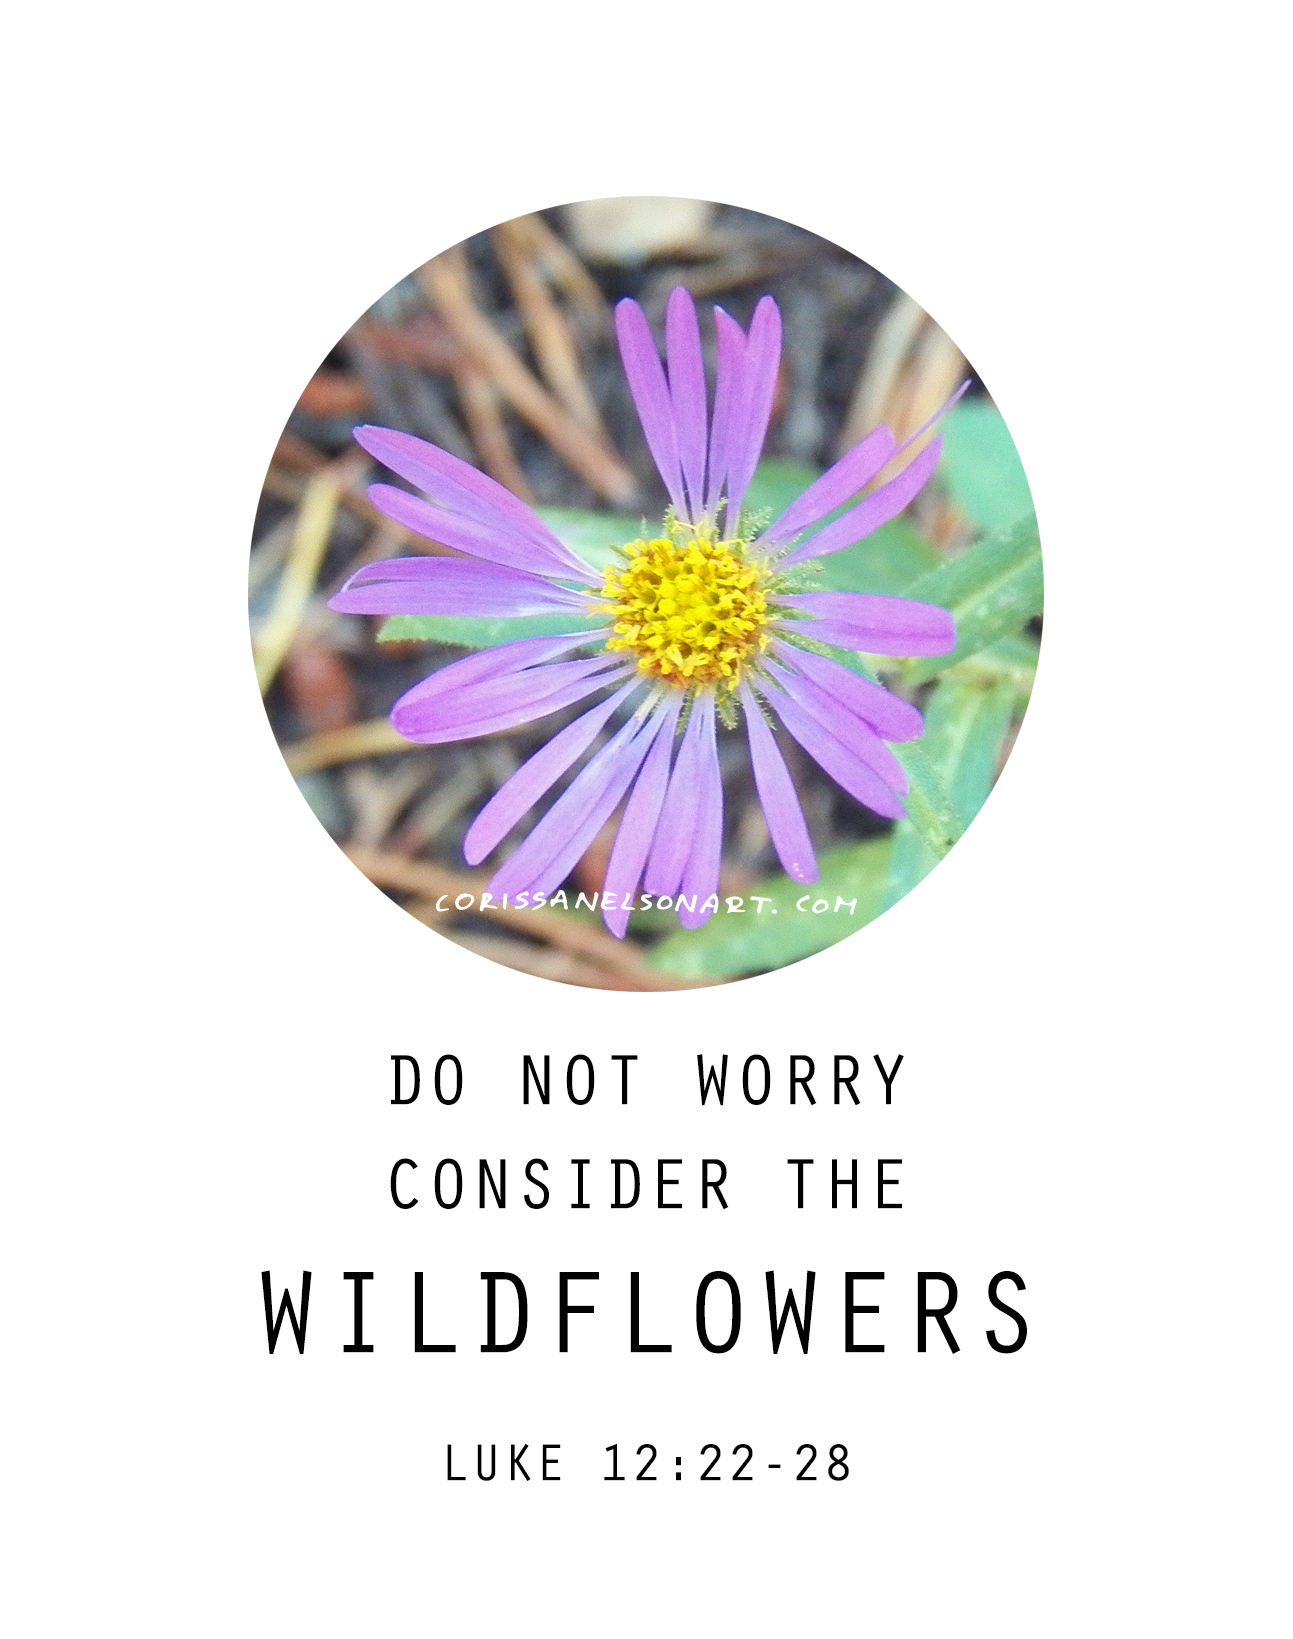 Do Not Worry - In the mountains, flowers grow in the craziest spots.  They might be right in a pathway, or in between rocks.  Their situations might not be what you would consider ideal, and yet they bloom.